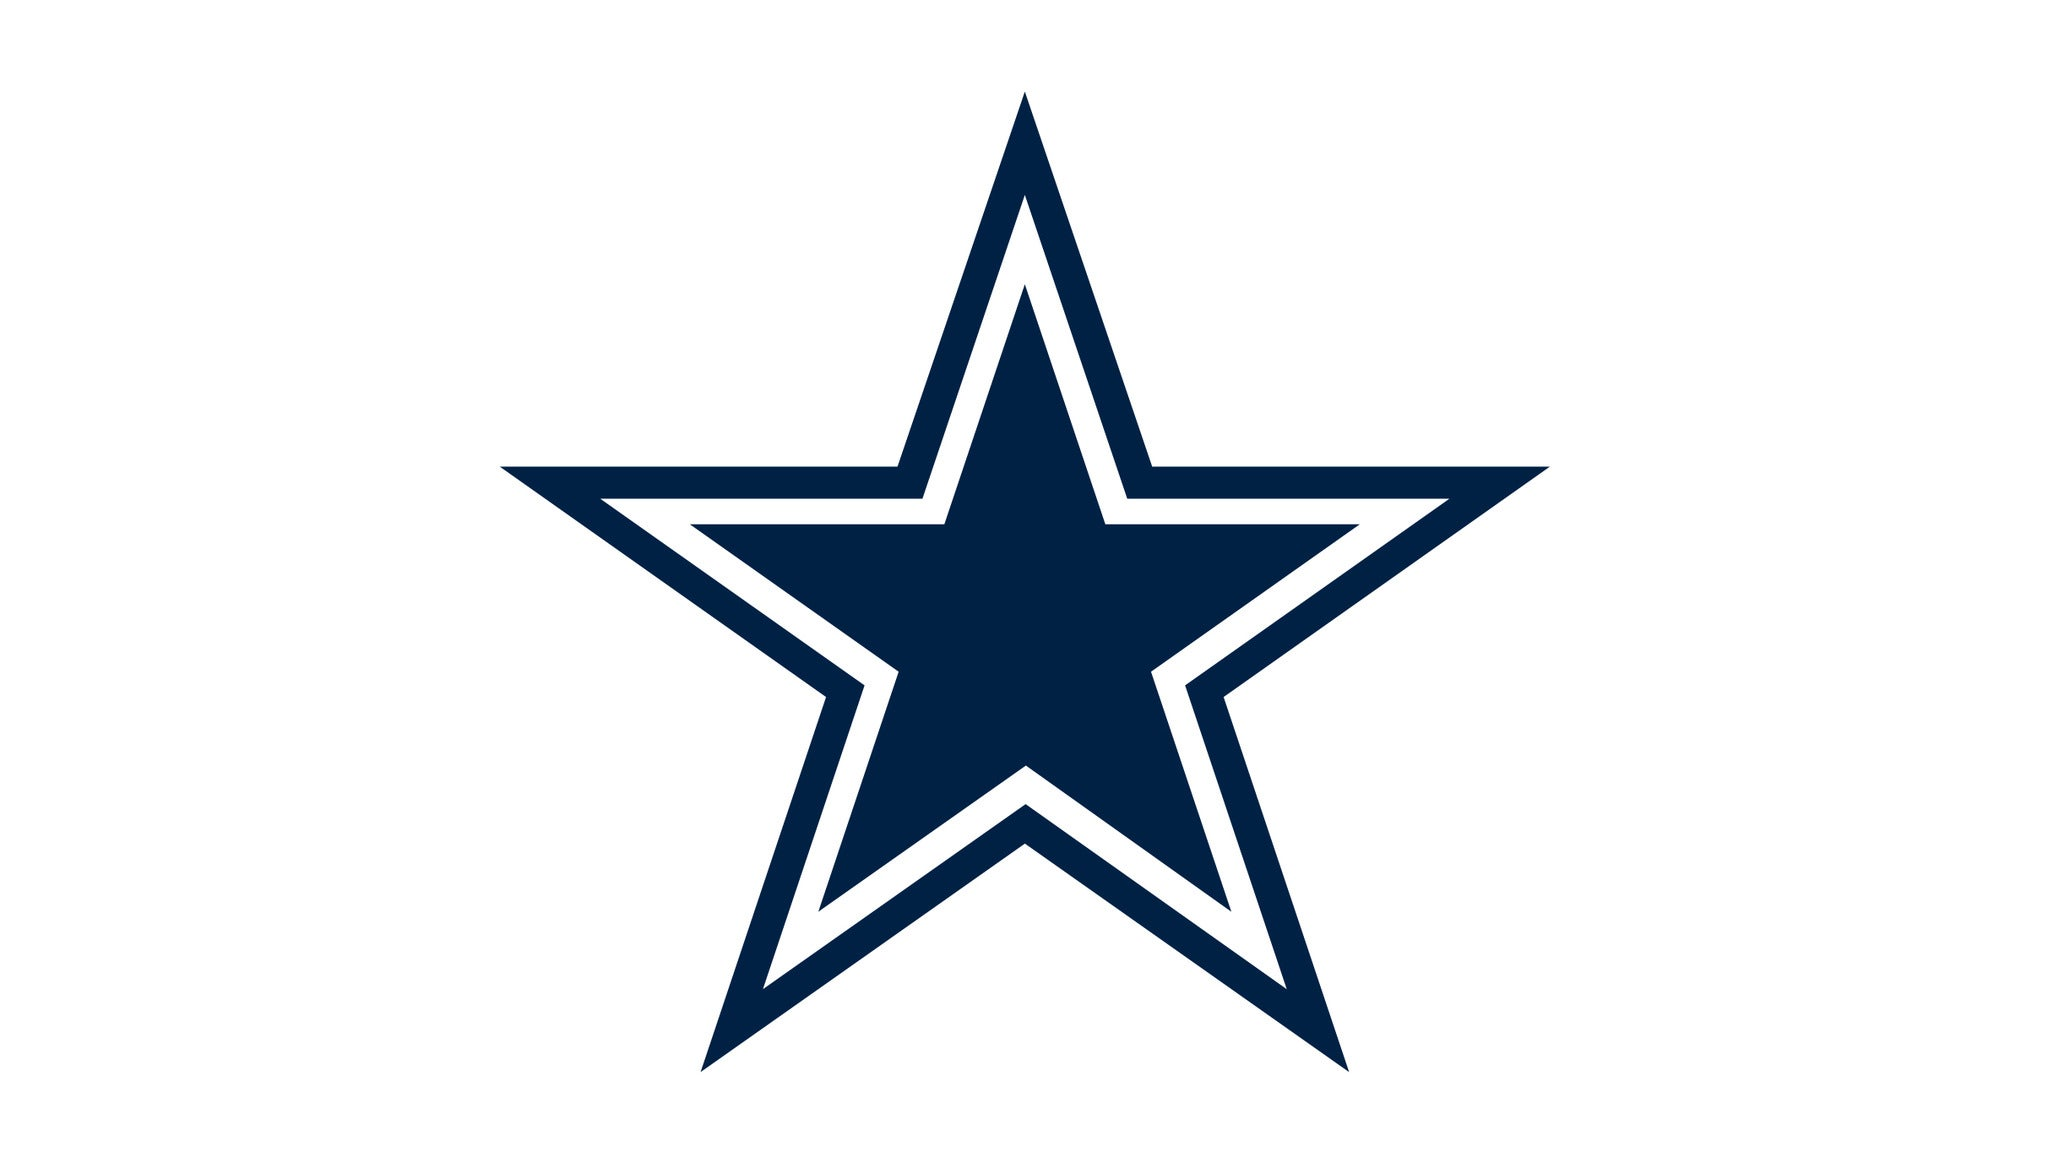 Dallas Cowboys vs. Los Angeles Chargers at AT&T Stadium